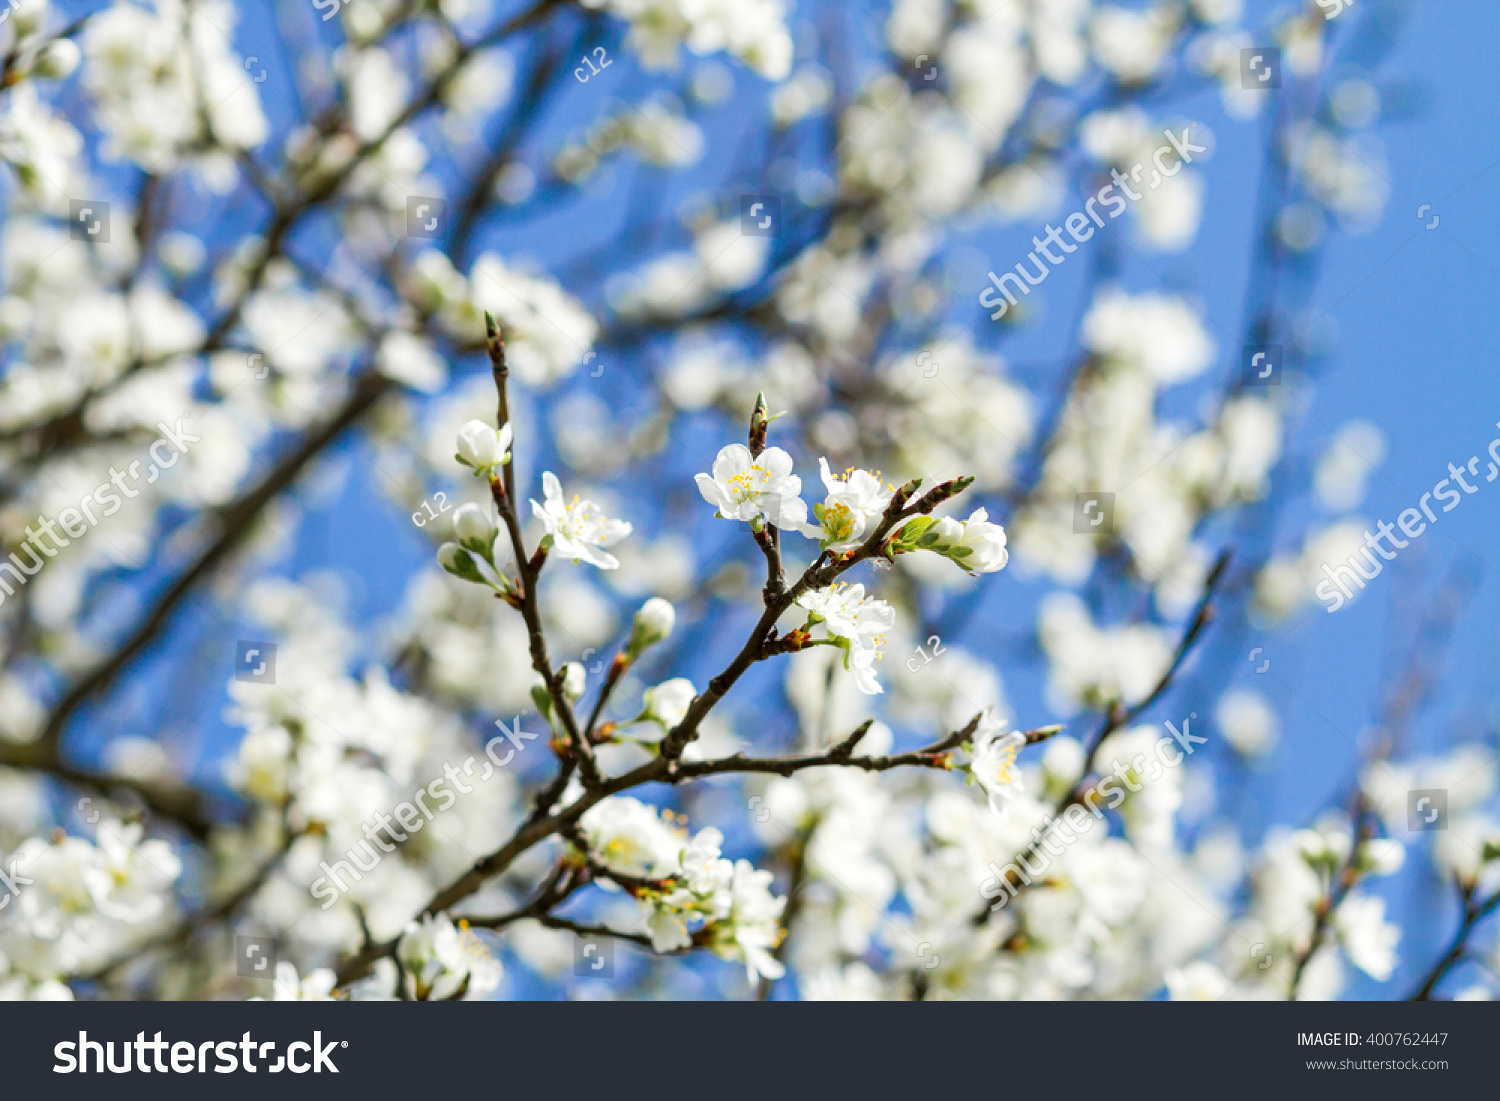 Branch Of A Blossoming Tree With Beautiful White Flowers Ez Canvas